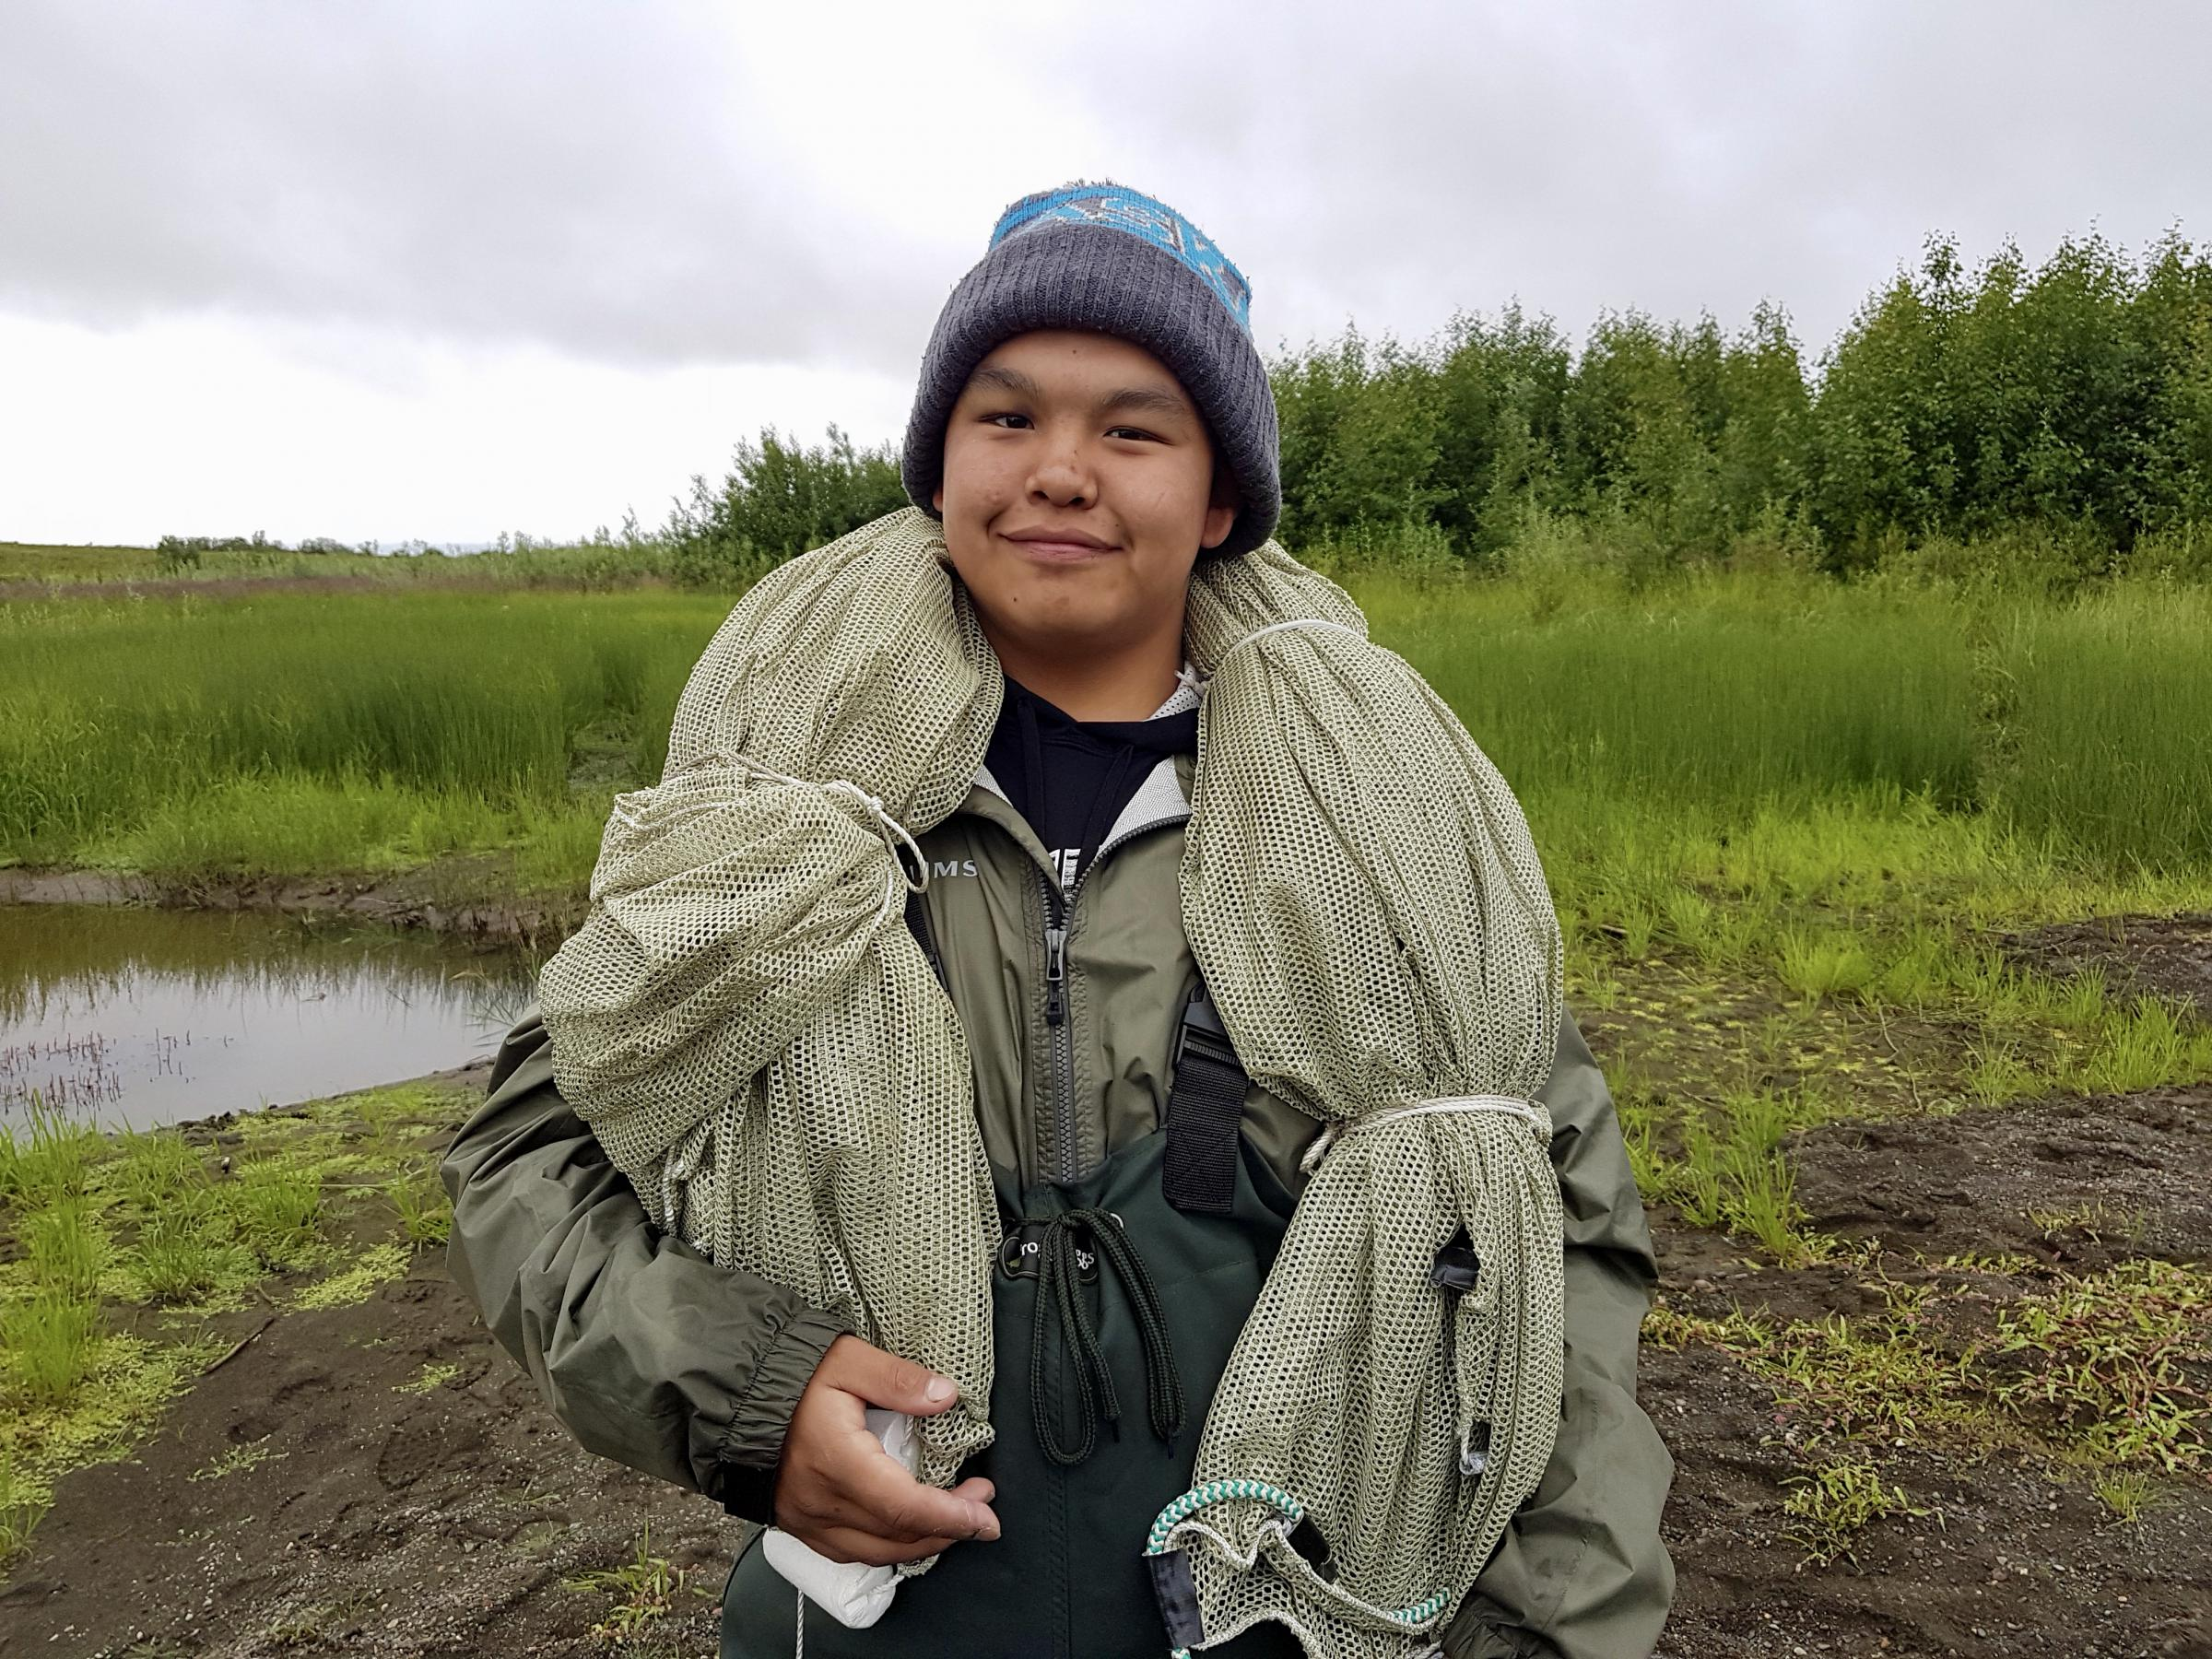 Orutsararmiut Native Council Summer Science and Culture camper Nicolai Chase, 16, gets ready to set up a beach seine net. (Photo by Christine Trudeau/KYUK)